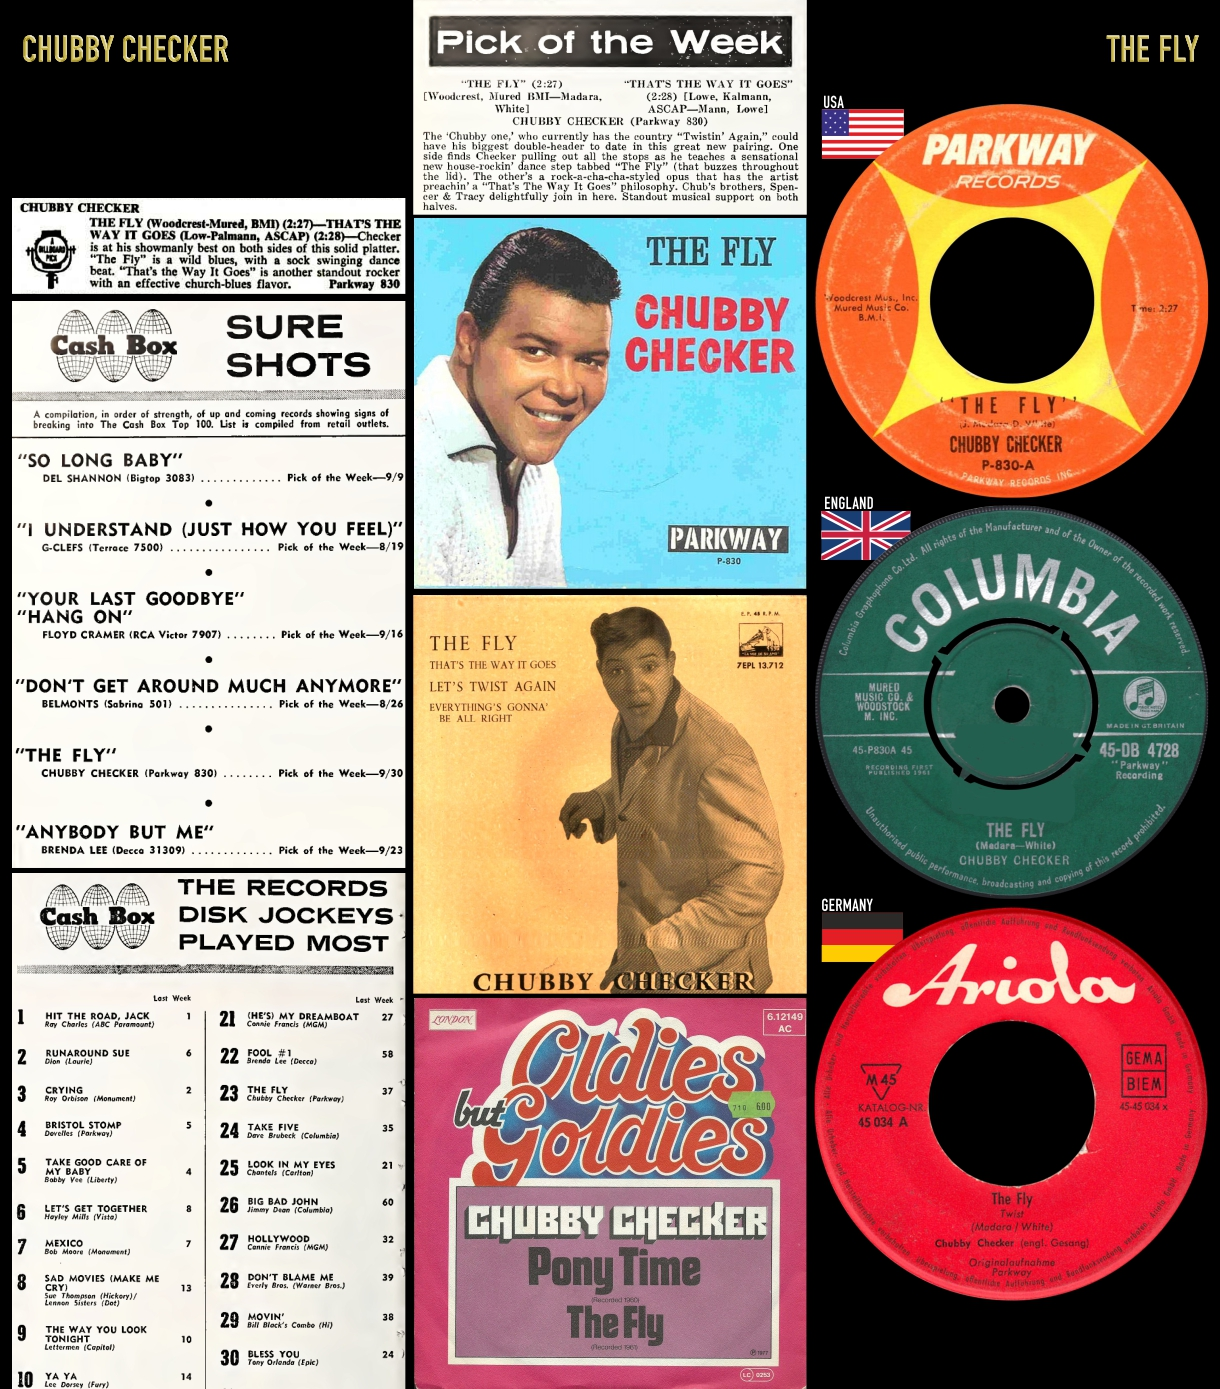 610930_Chubby Checker_The Fly